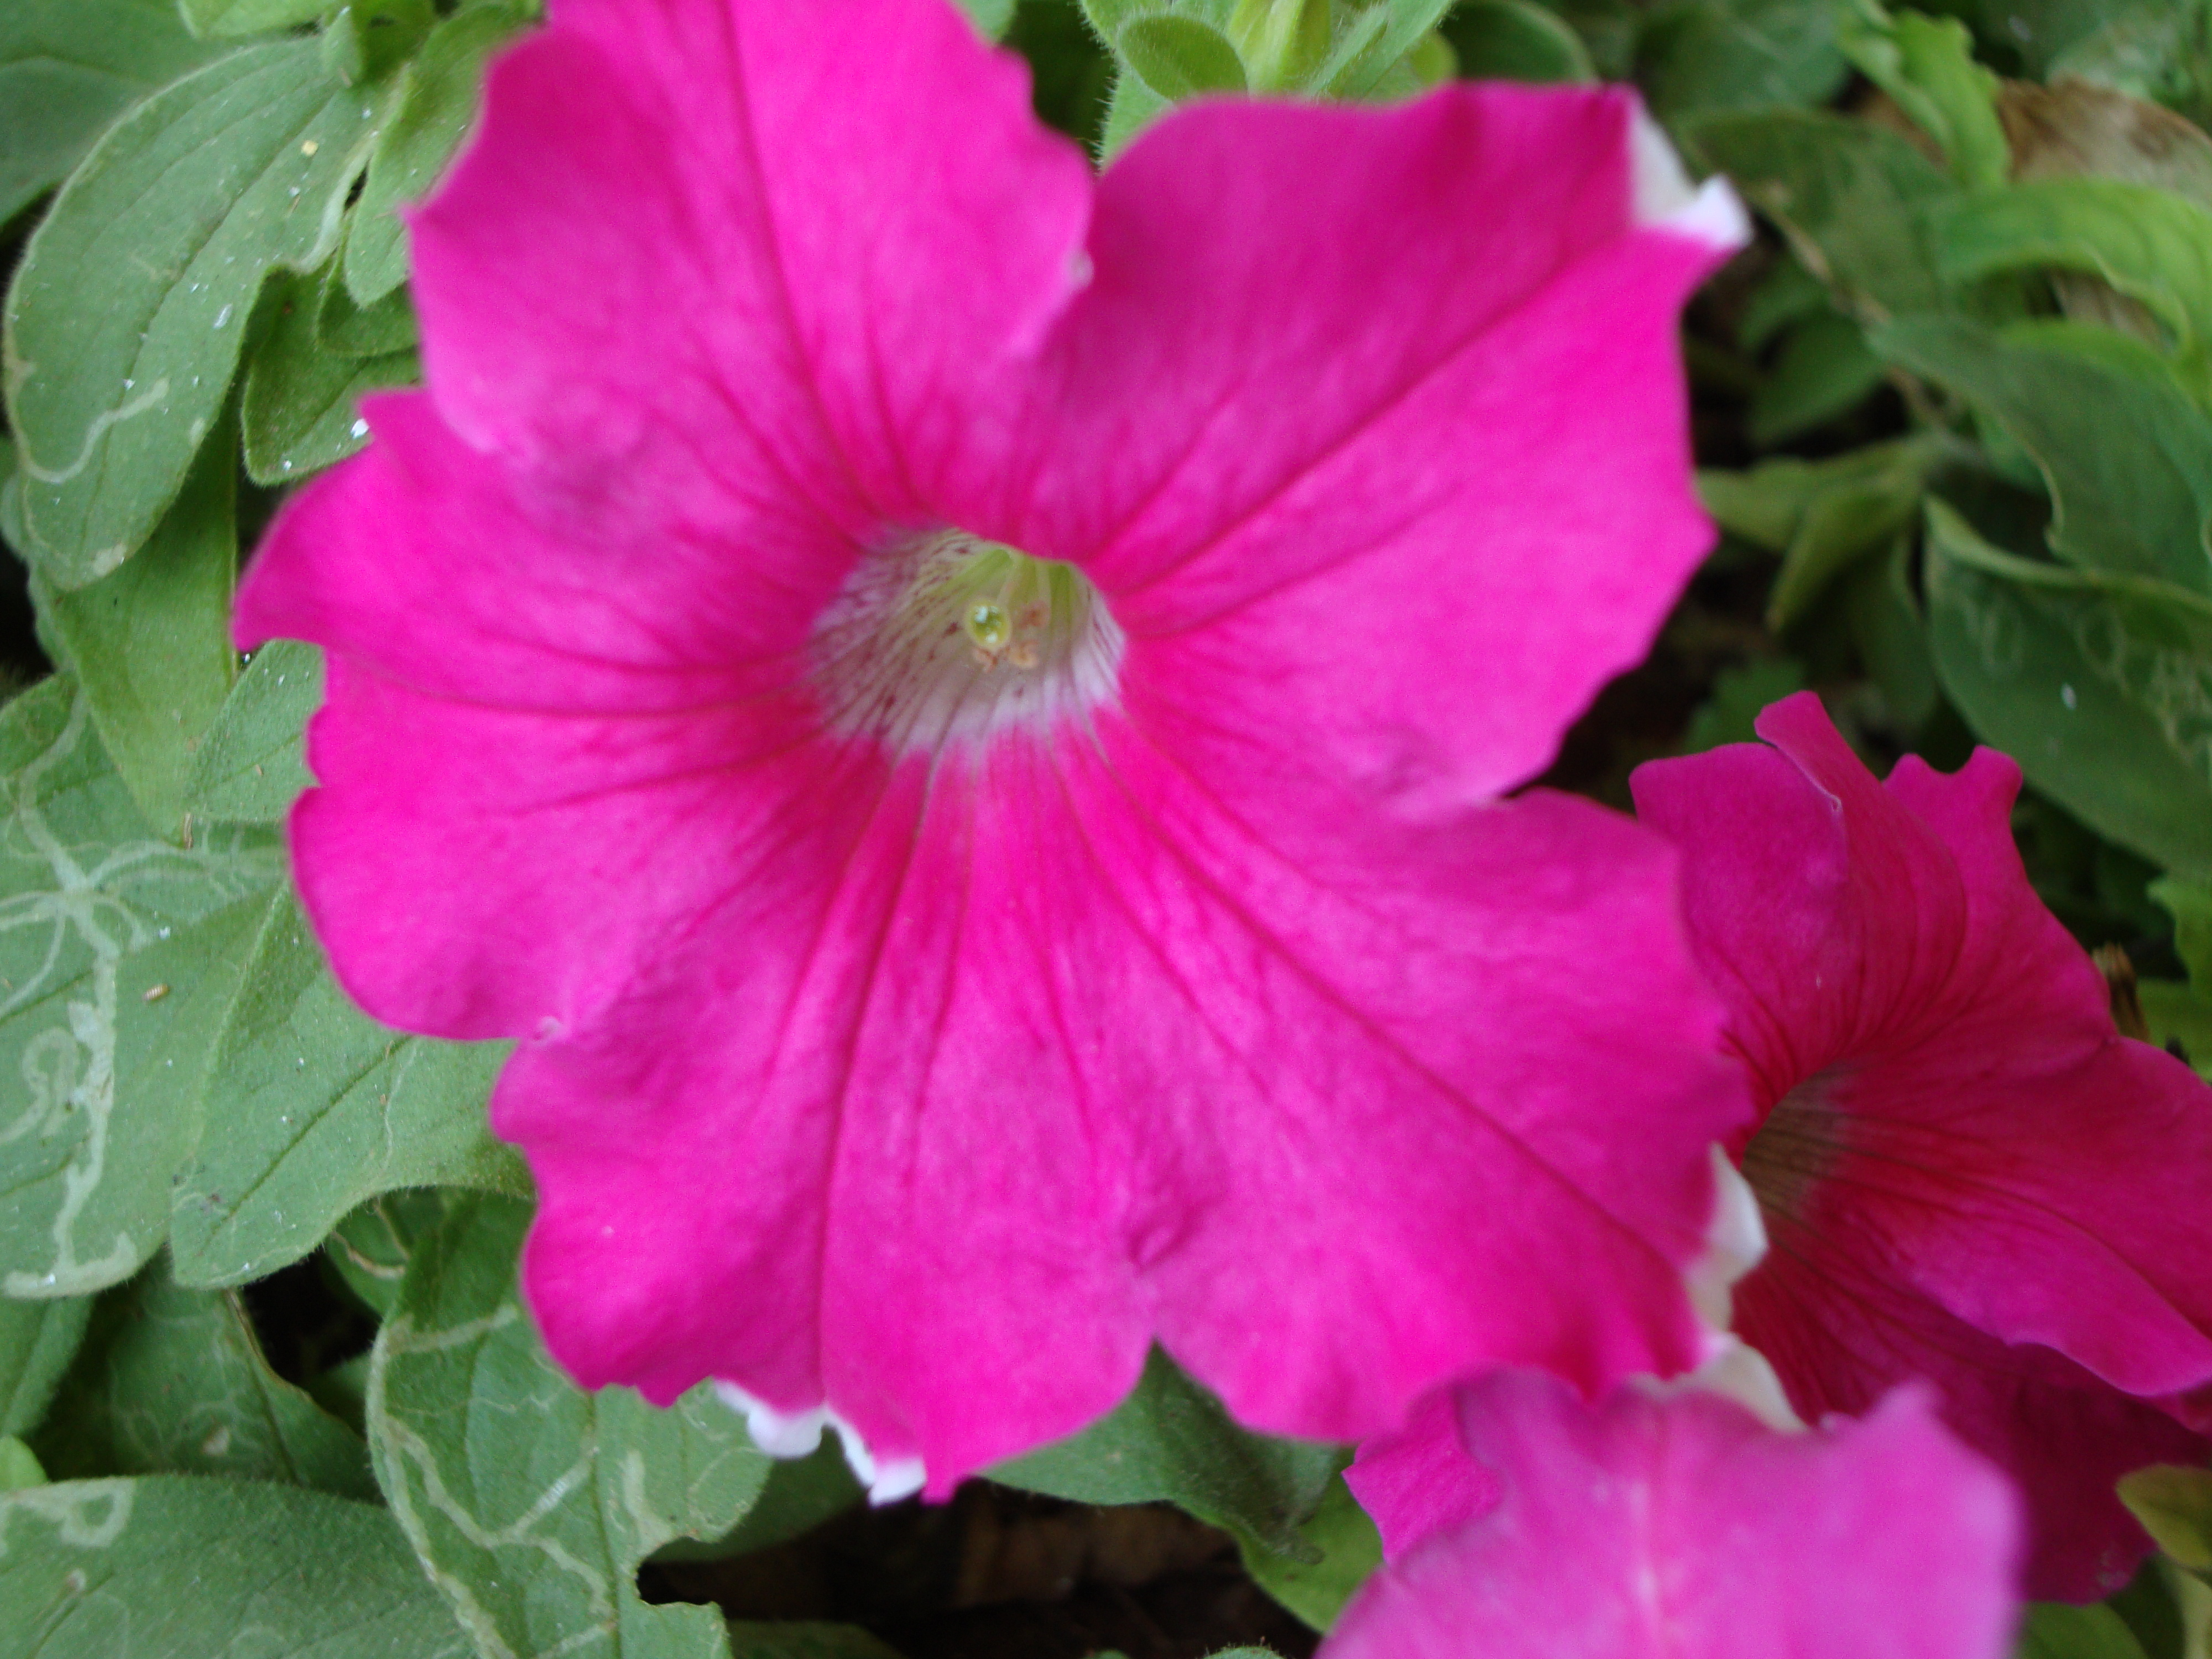 Pink trumpet shaped flowers image collections flower decoration ideas pink naturally beautiful page 3 petunias are trumpet shaped flowers mightylinksfo mightylinksfo